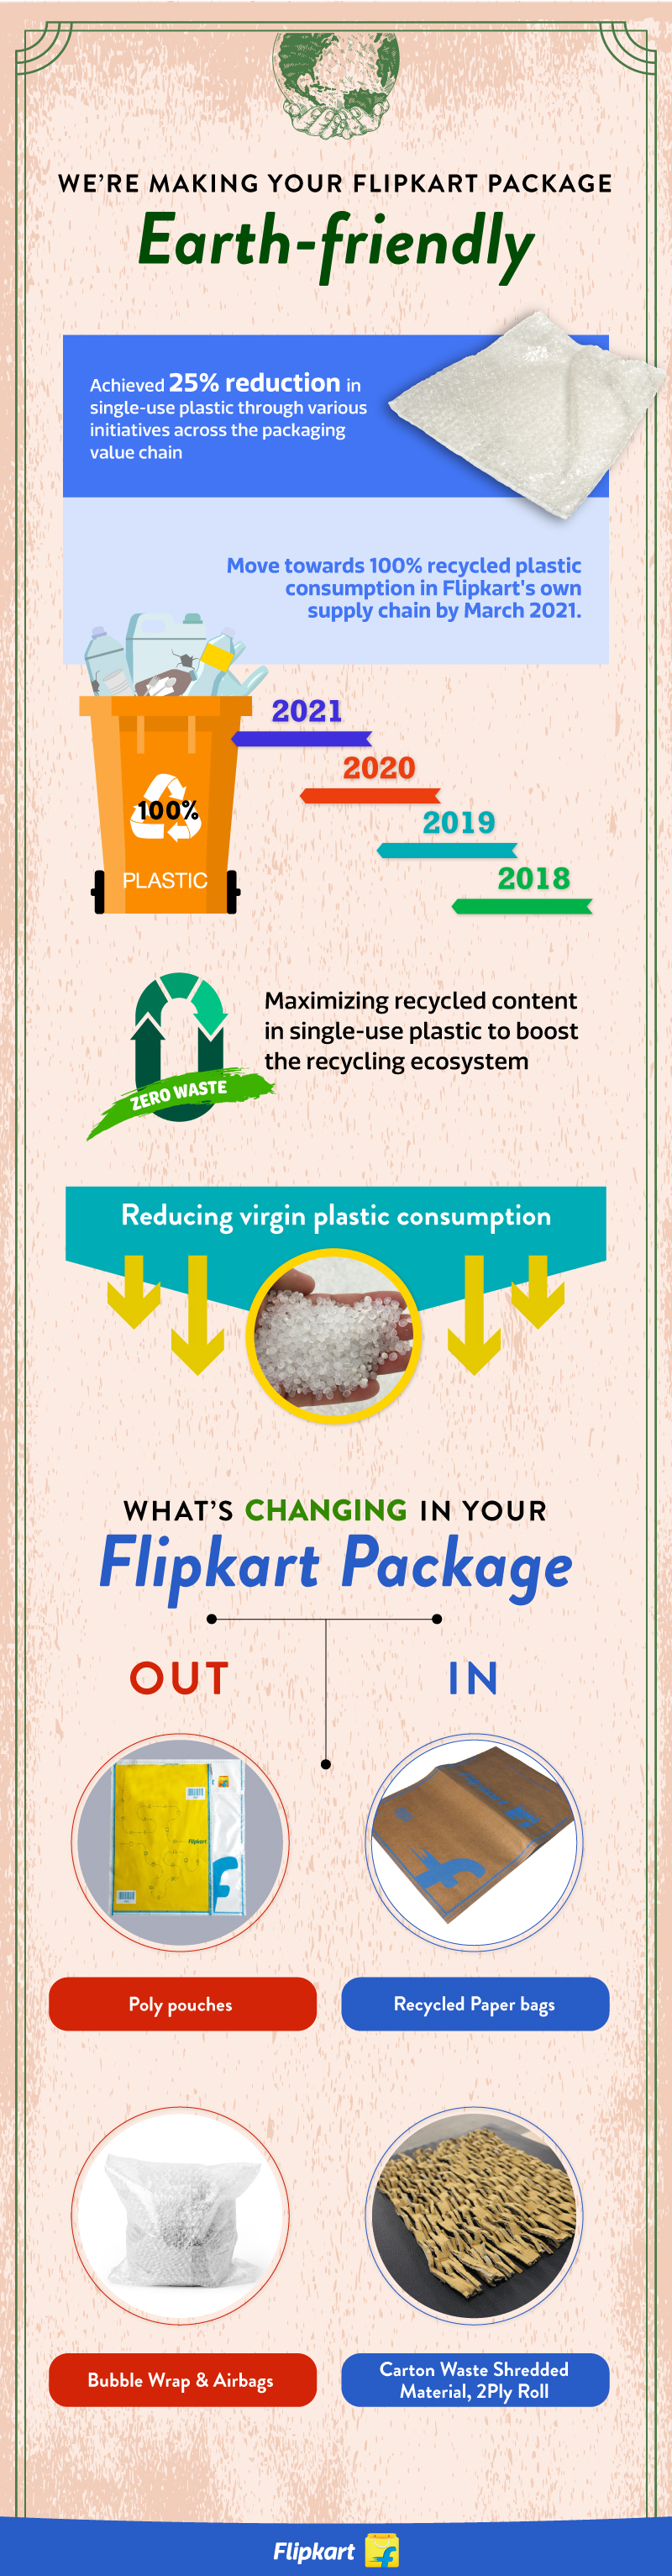 Flipkart Reduces Single Use Plastic